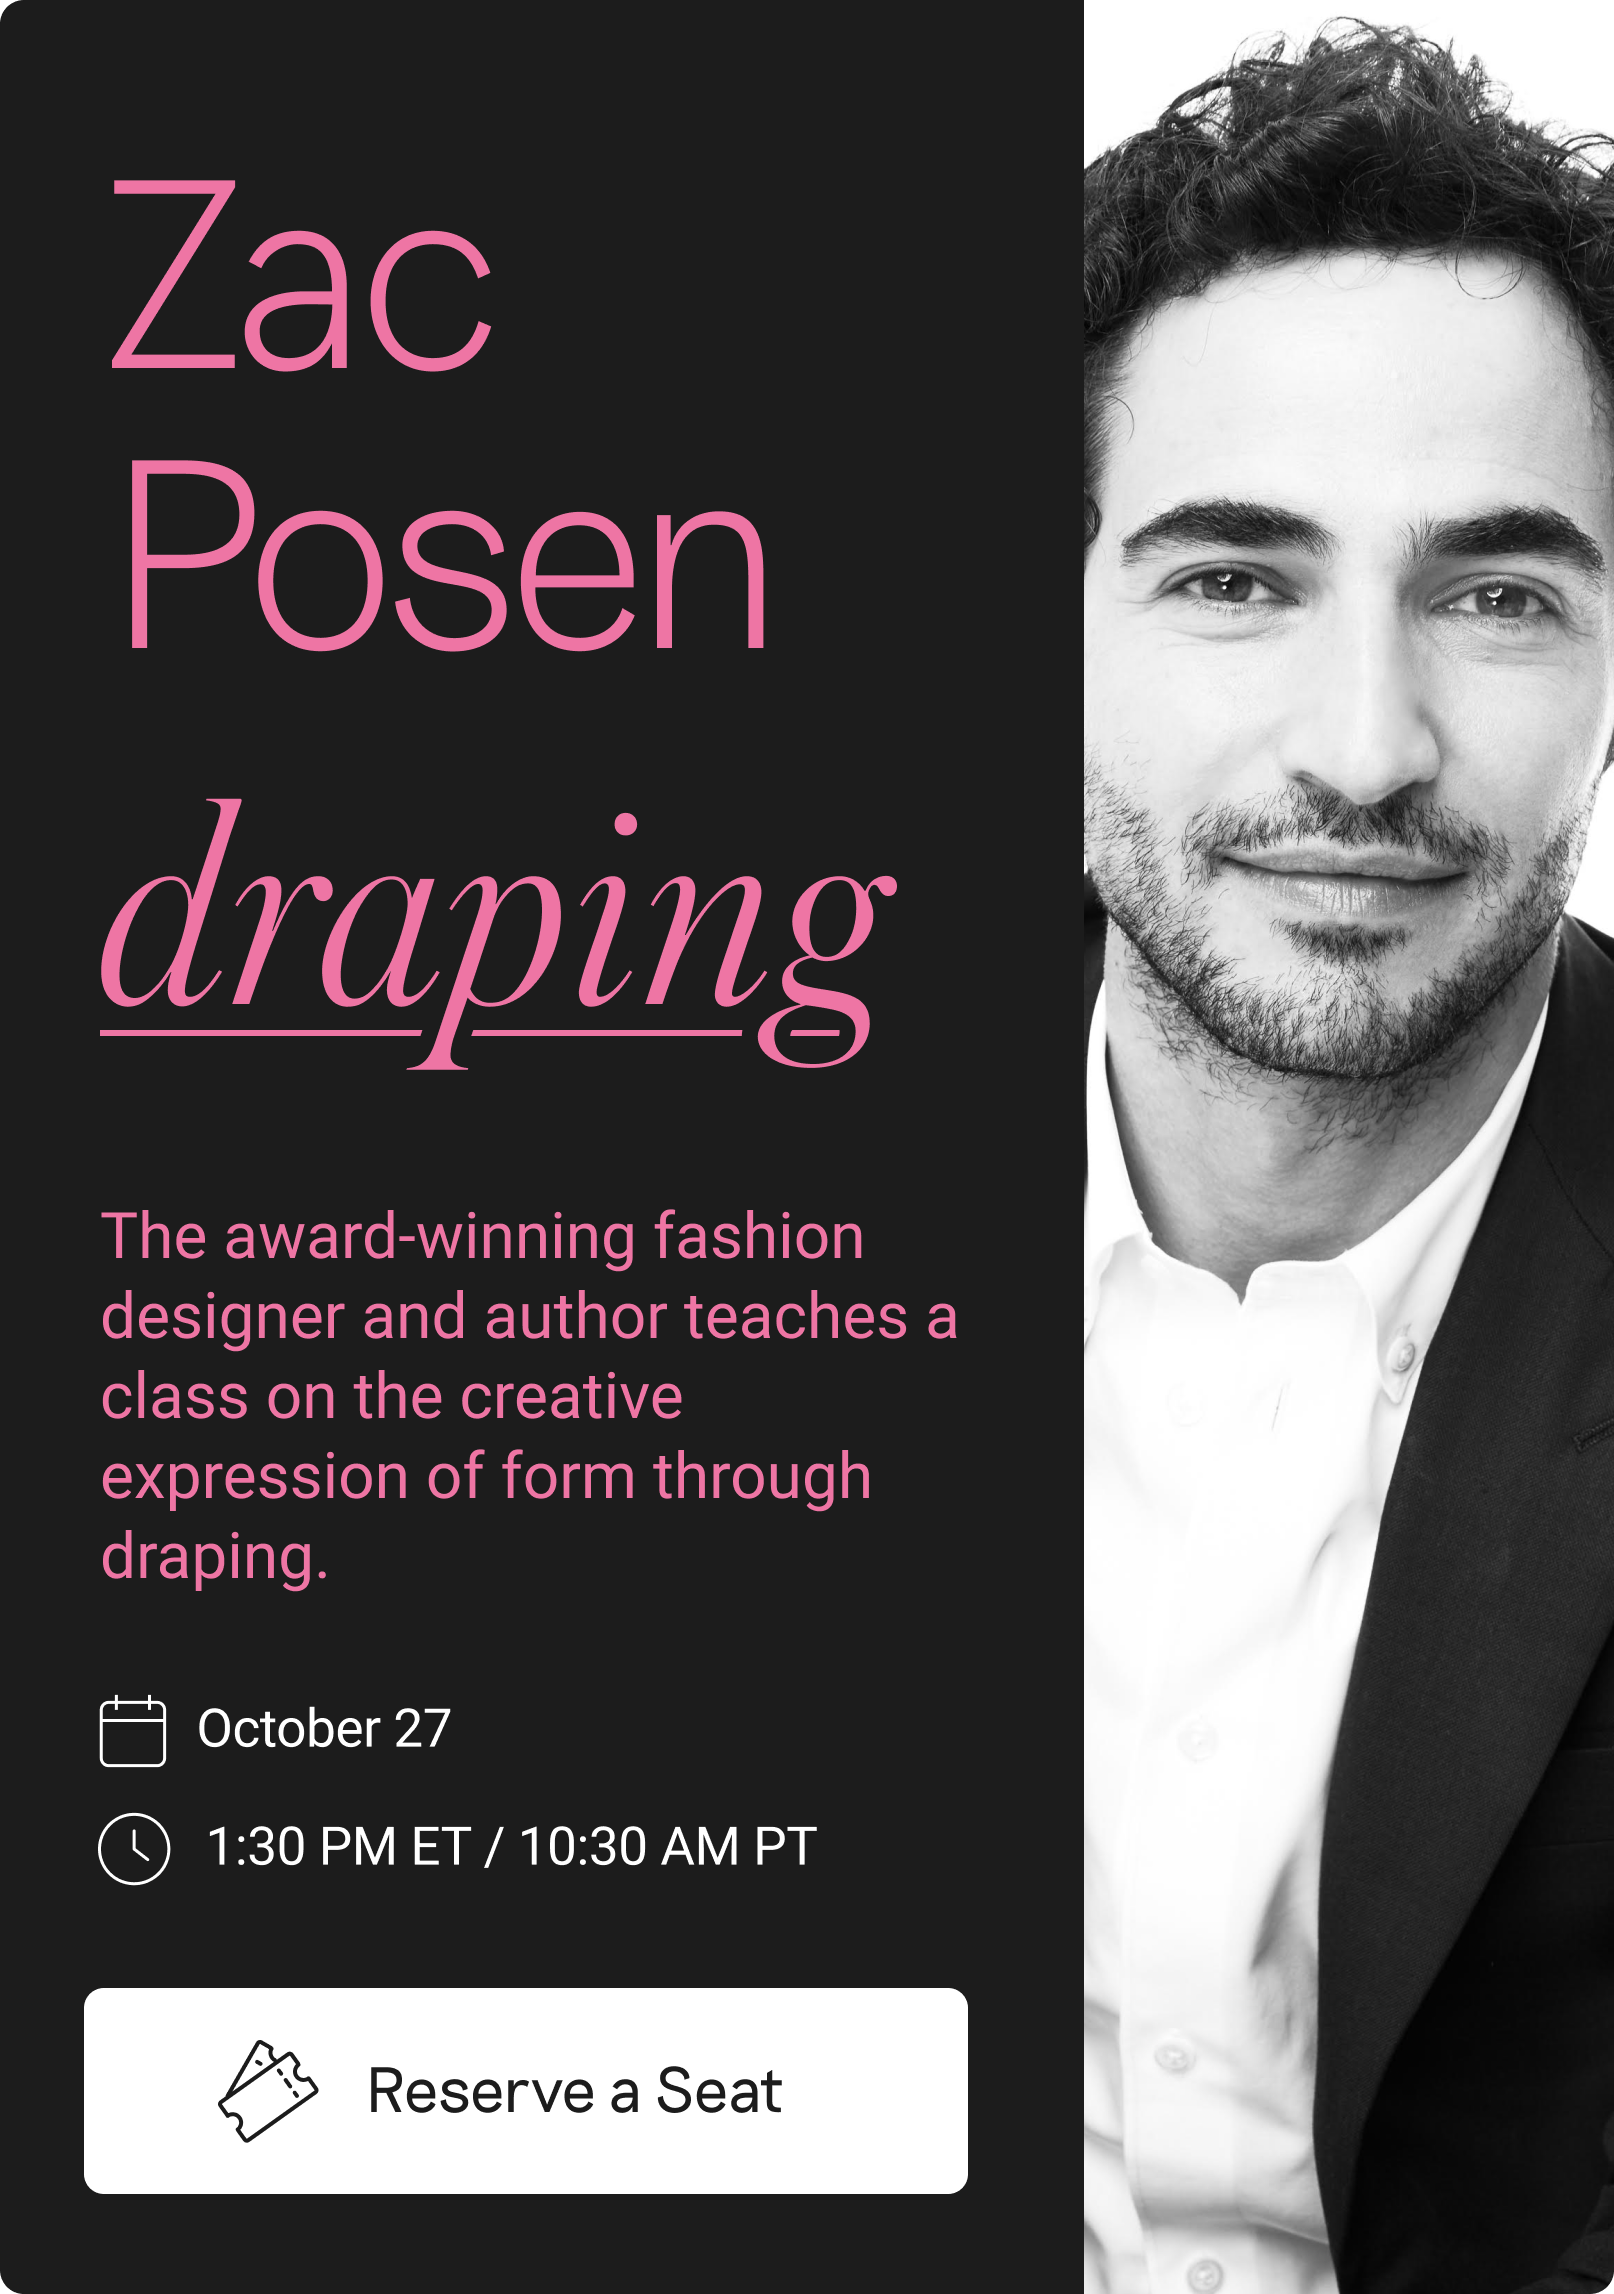 Zac Posen will be teaching draping.